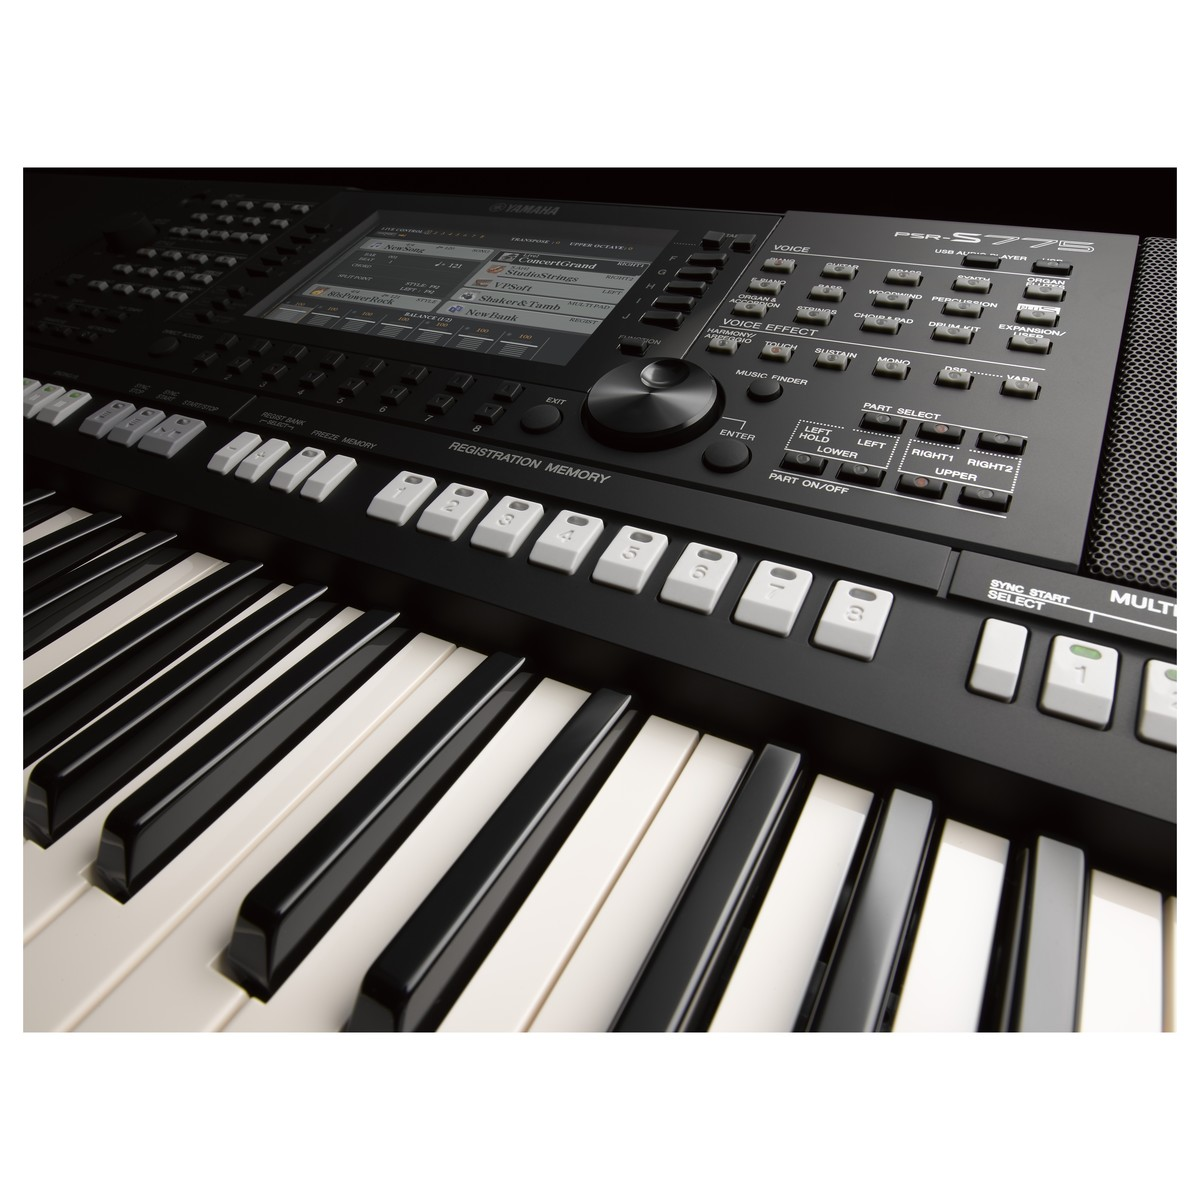 yamaha psr s775 portable arranger workstation at gear4music. Black Bedroom Furniture Sets. Home Design Ideas